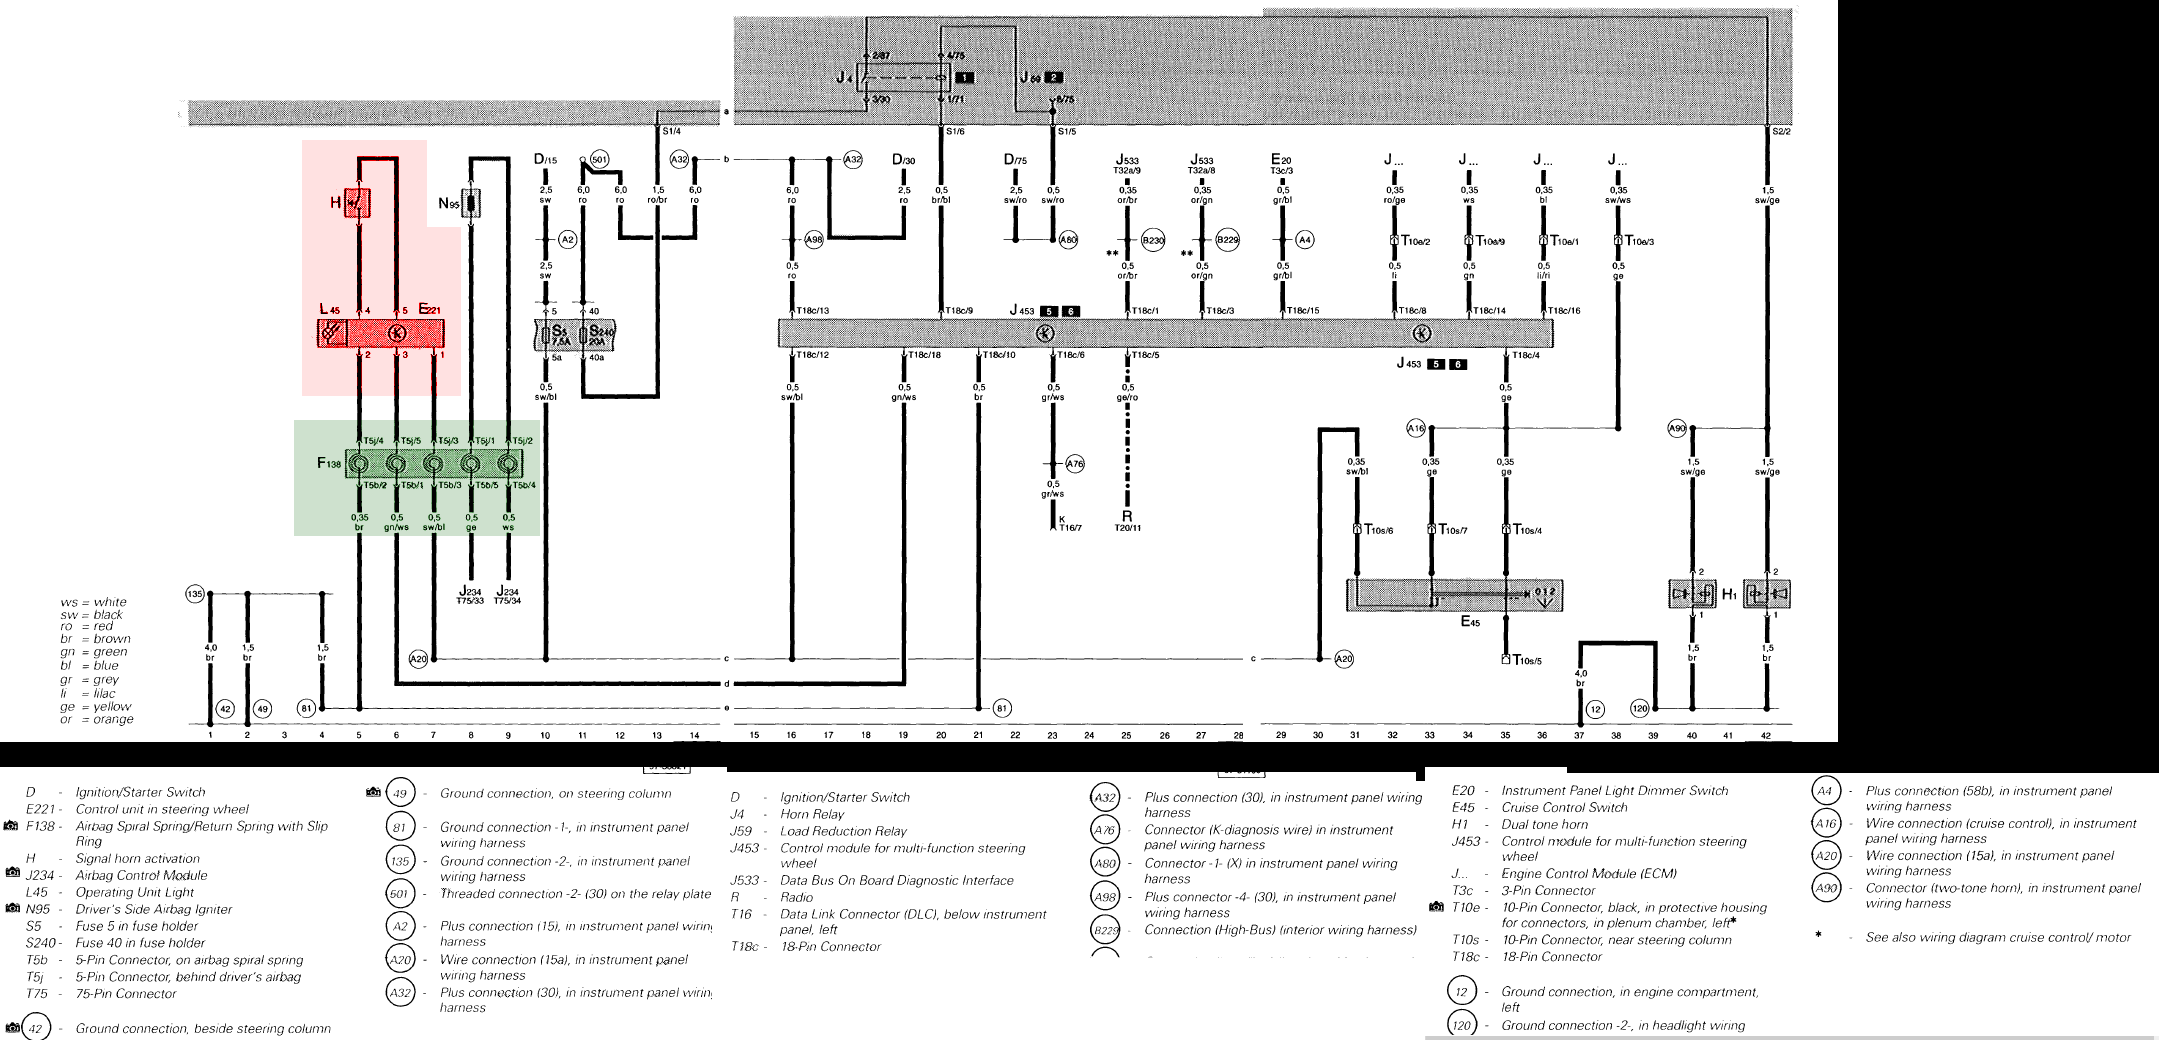 diagram mk4 golf wiring diagram mk4 golf interior \u2022 wiring diagrams j mk4 golf wiring harness at crackthecode.co